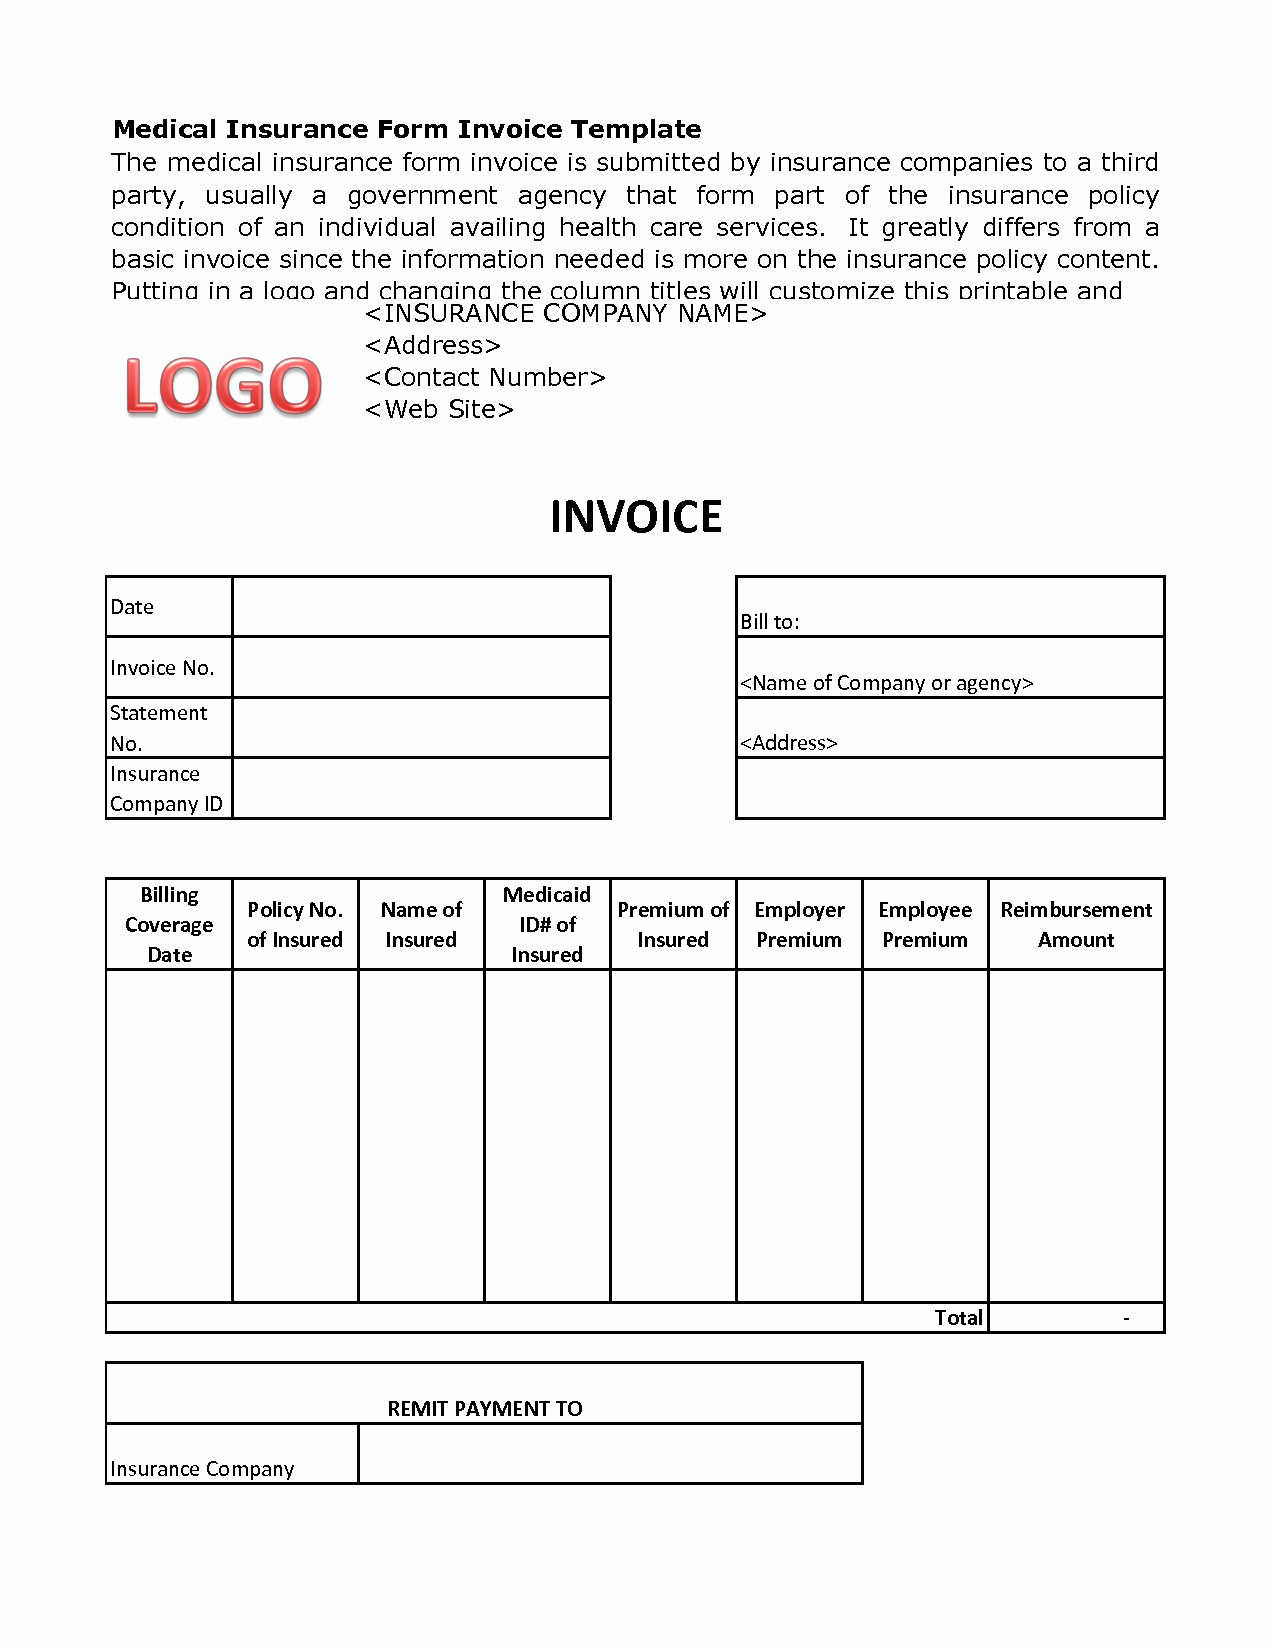 Medical Bill Template Pdf Awesome Medical Billing Invoice Template Free Medical Invoice